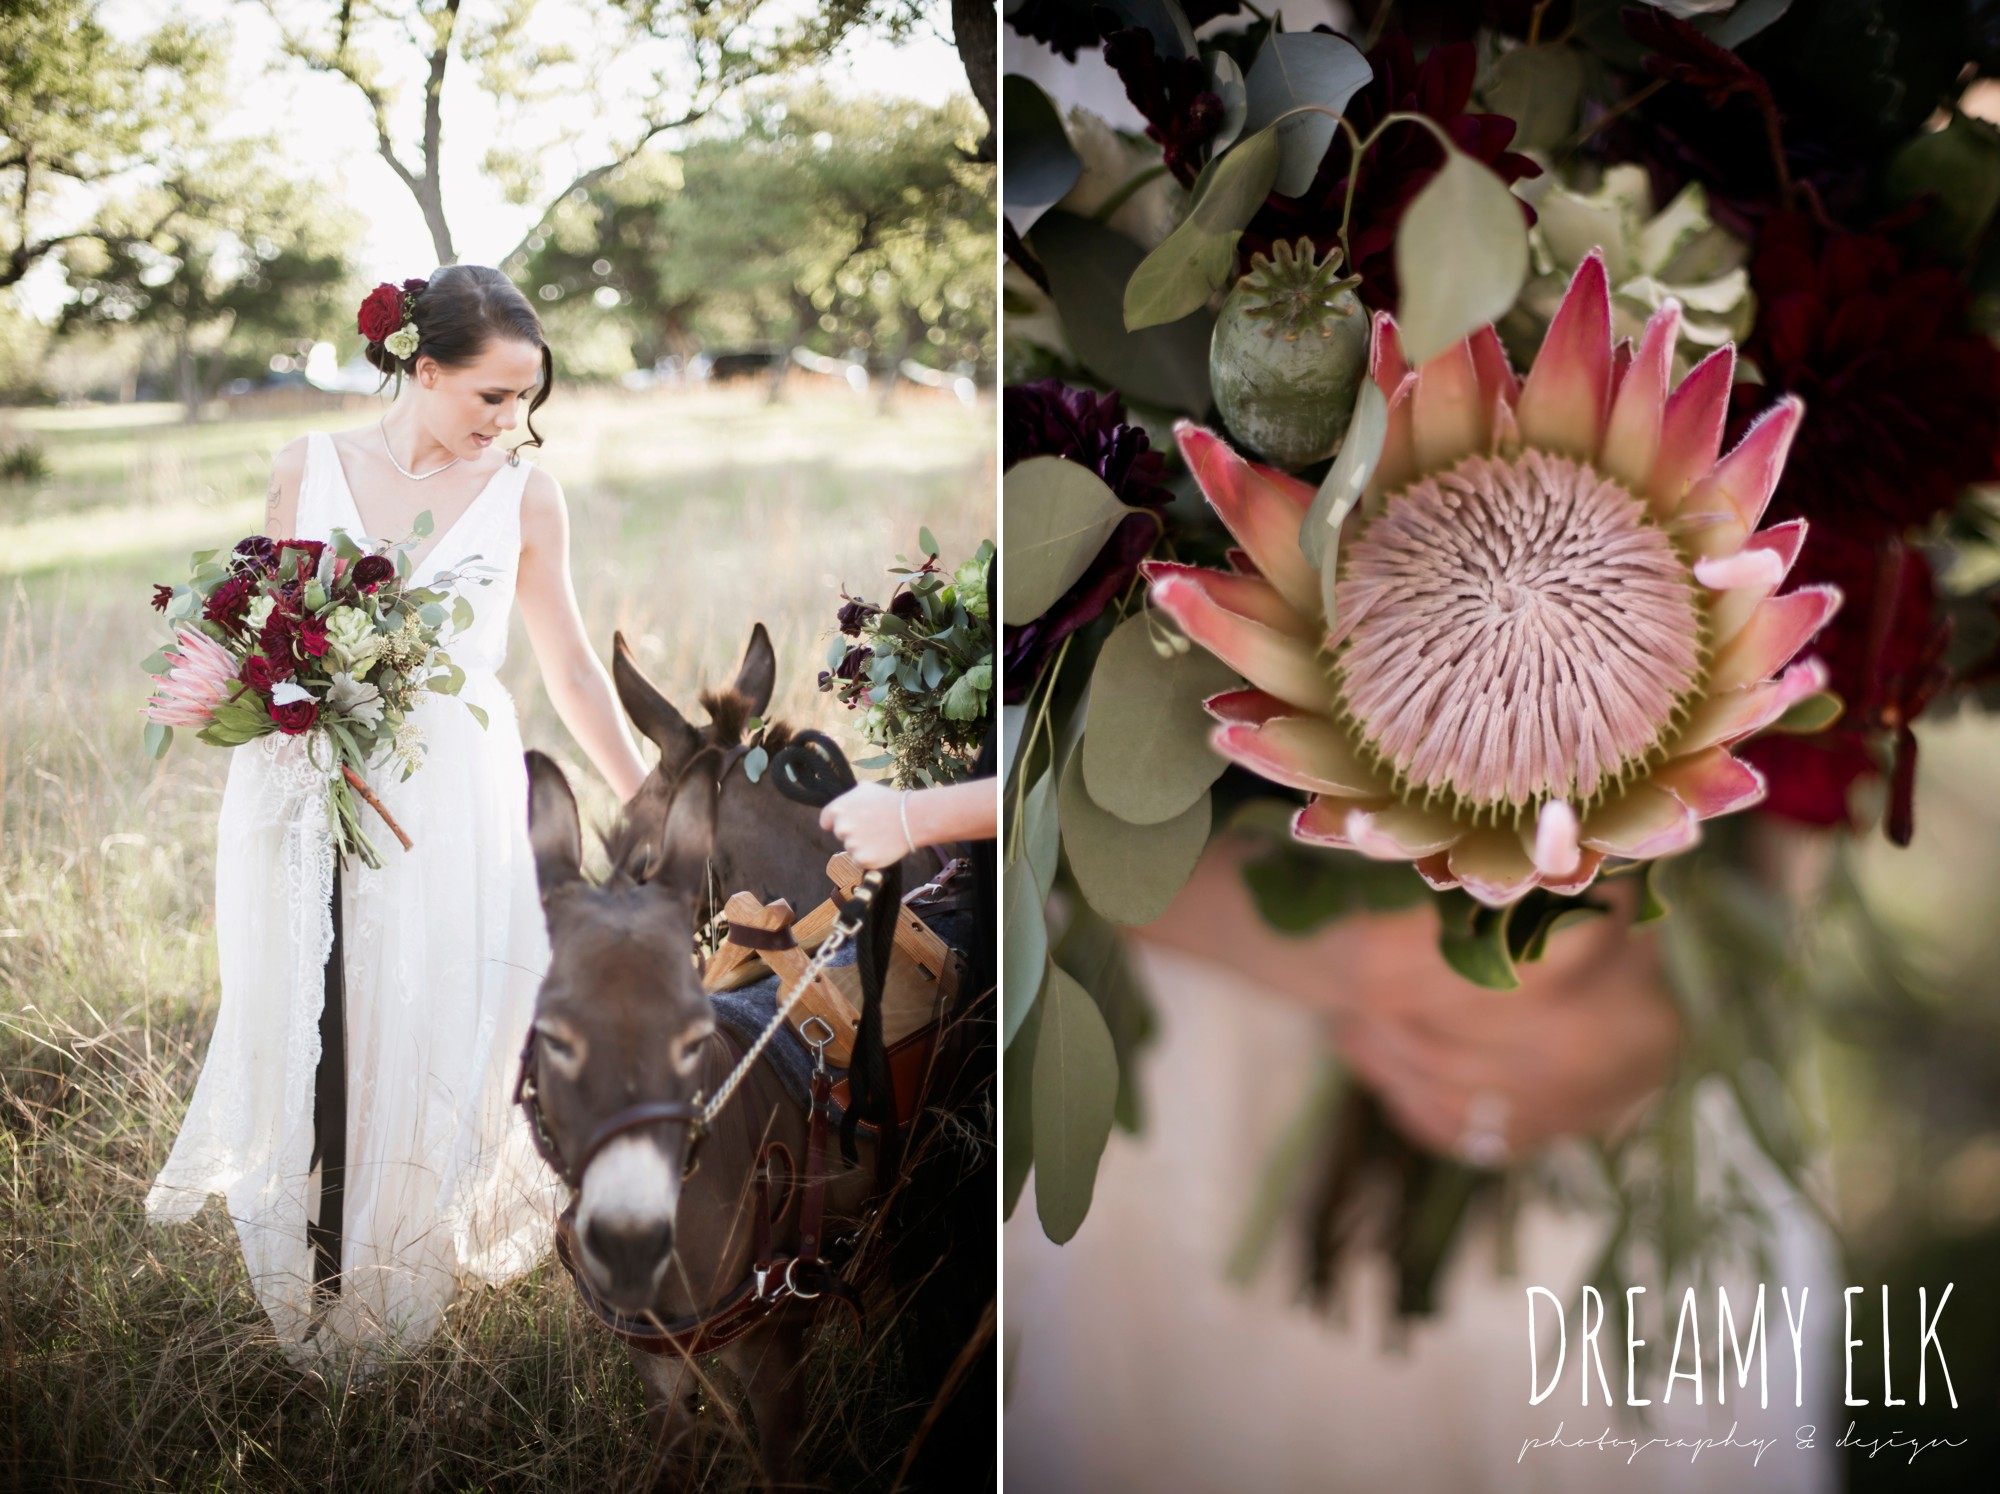 the cedars ranch, libby cole creations, saint isabel bridal, melange bridal, glam gone good, moody rich delicate marfa inspired burgundy maroon black white spring styled wedding photo shoot {dreamy elk photography and design}